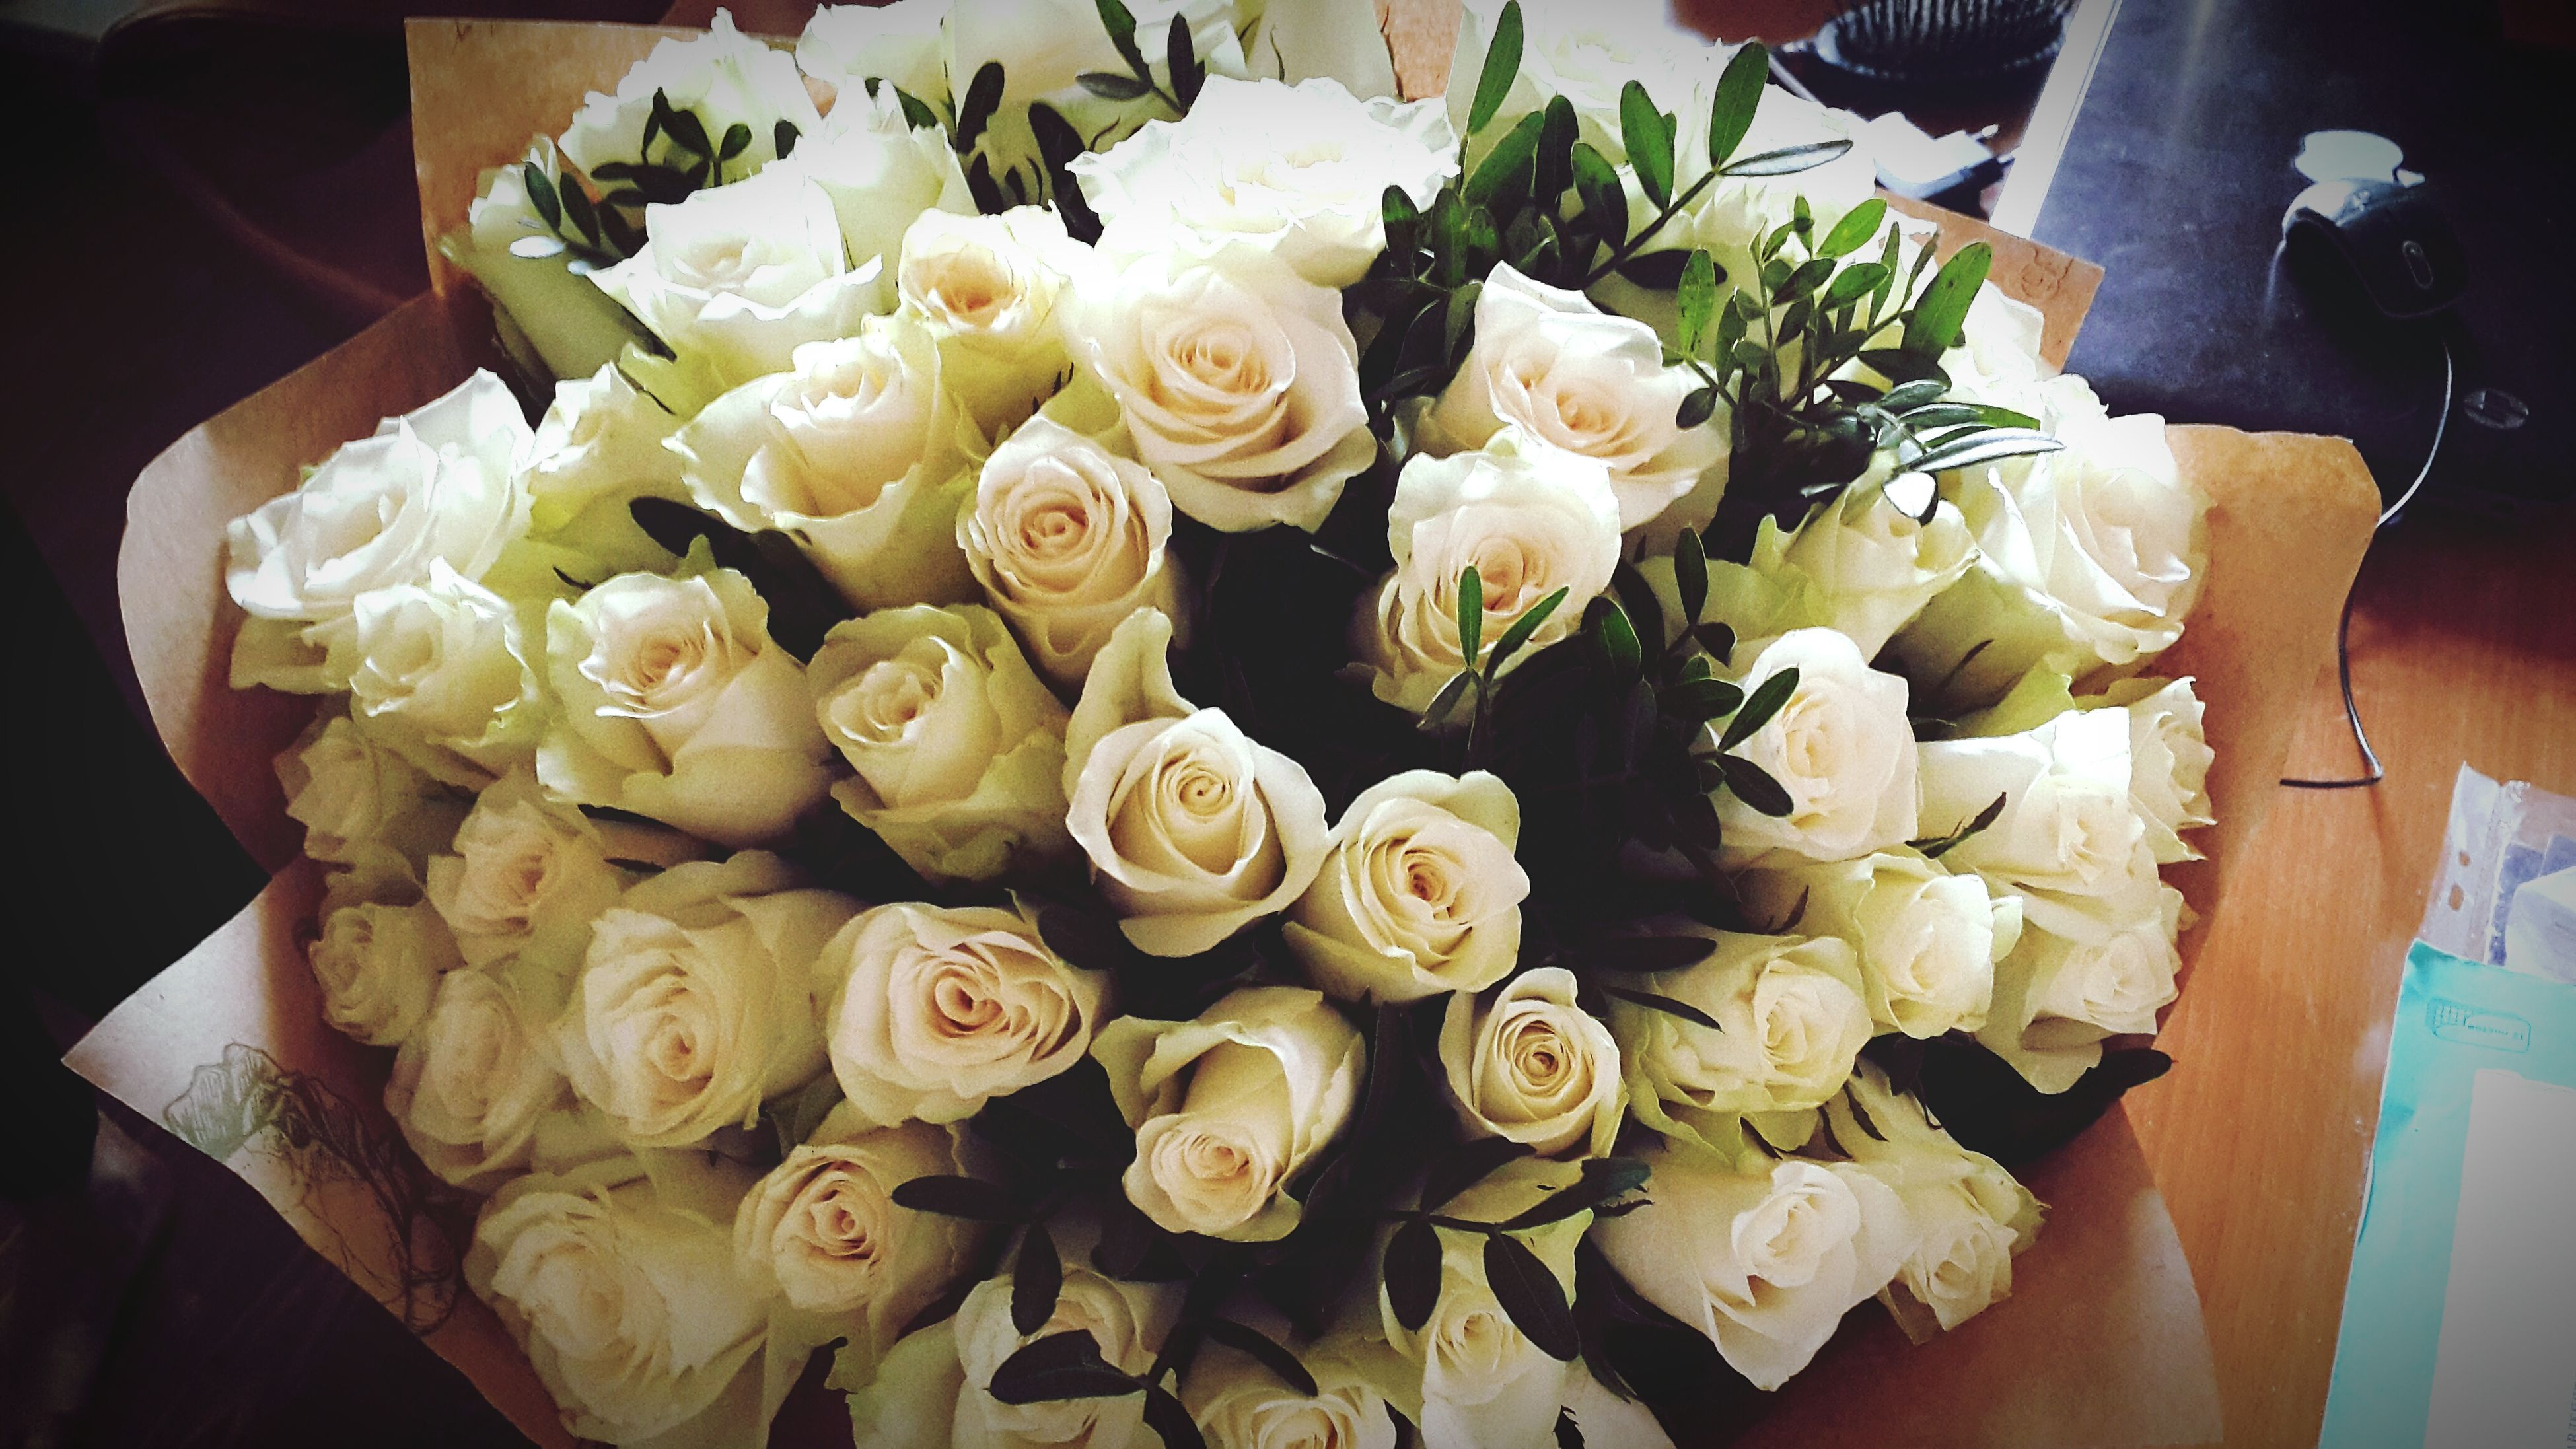 flower, freshness, indoors, petal, bouquet, vase, fragility, rose - flower, flower head, bunch of flowers, flower arrangement, high angle view, table, close-up, decoration, beauty in nature, rose, still life, white color, variation